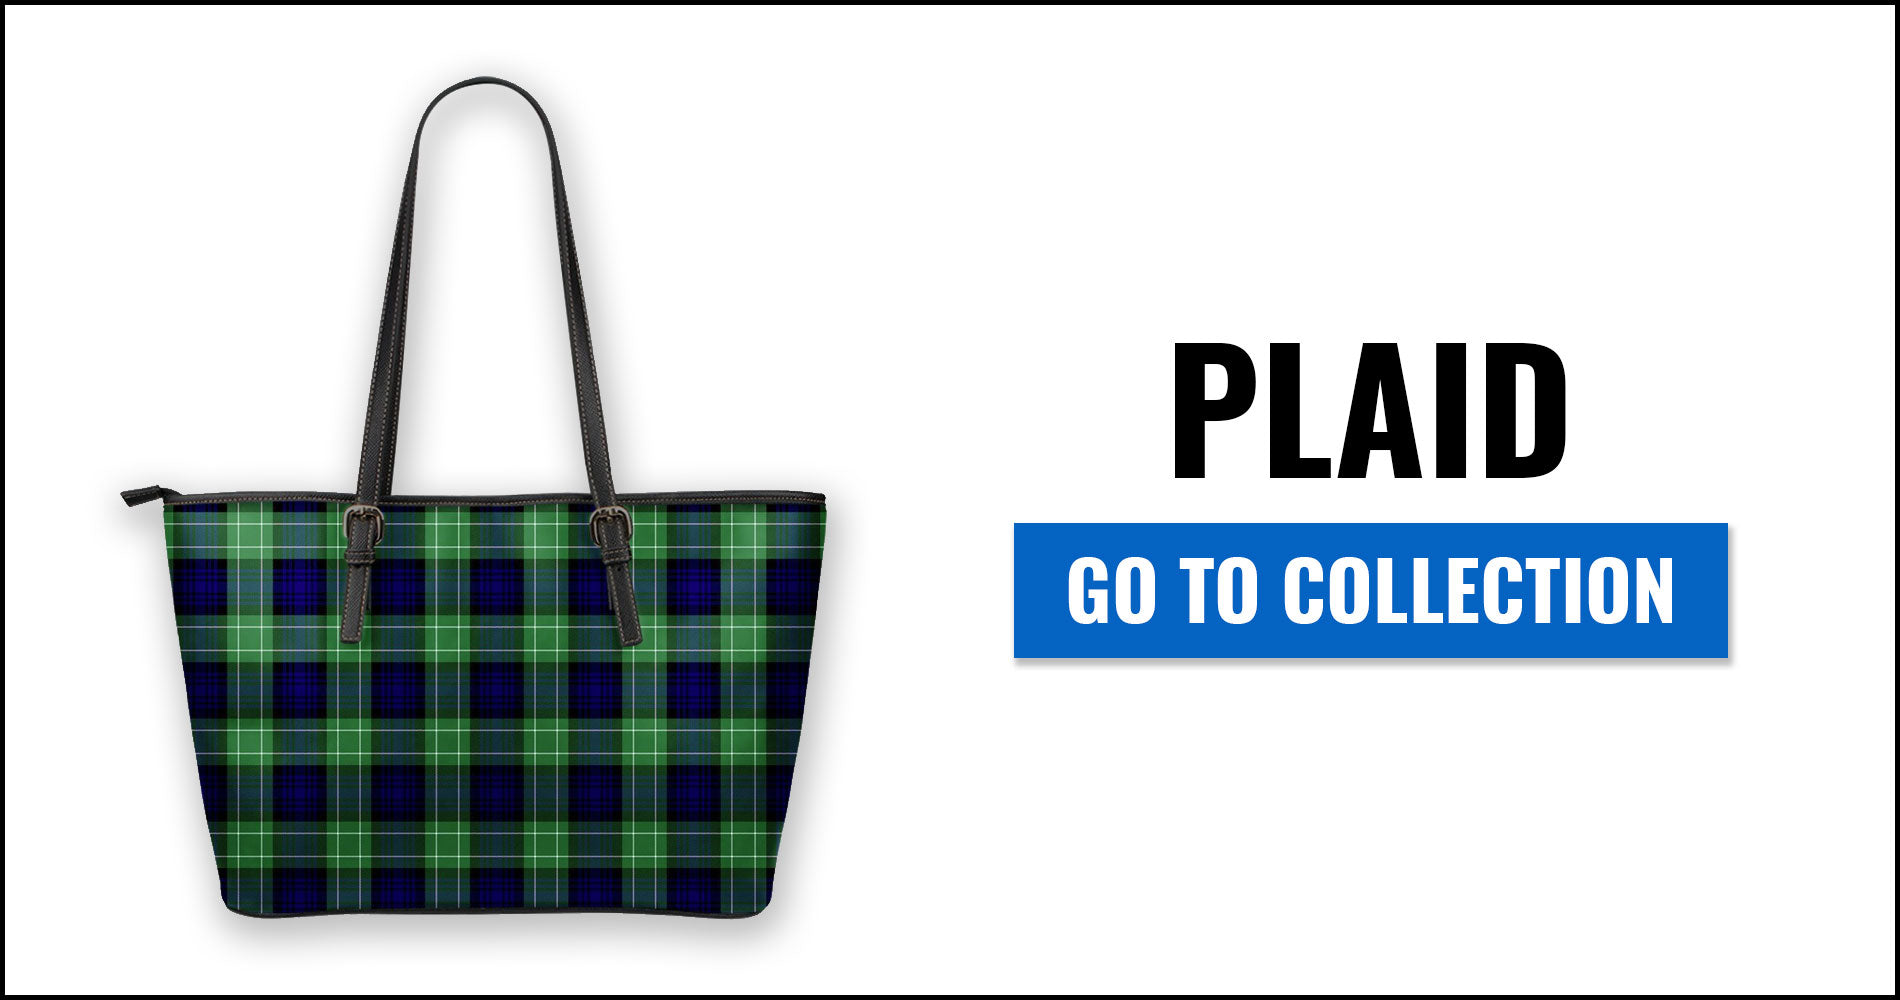 Plaid Tartan Leather Tote Bags